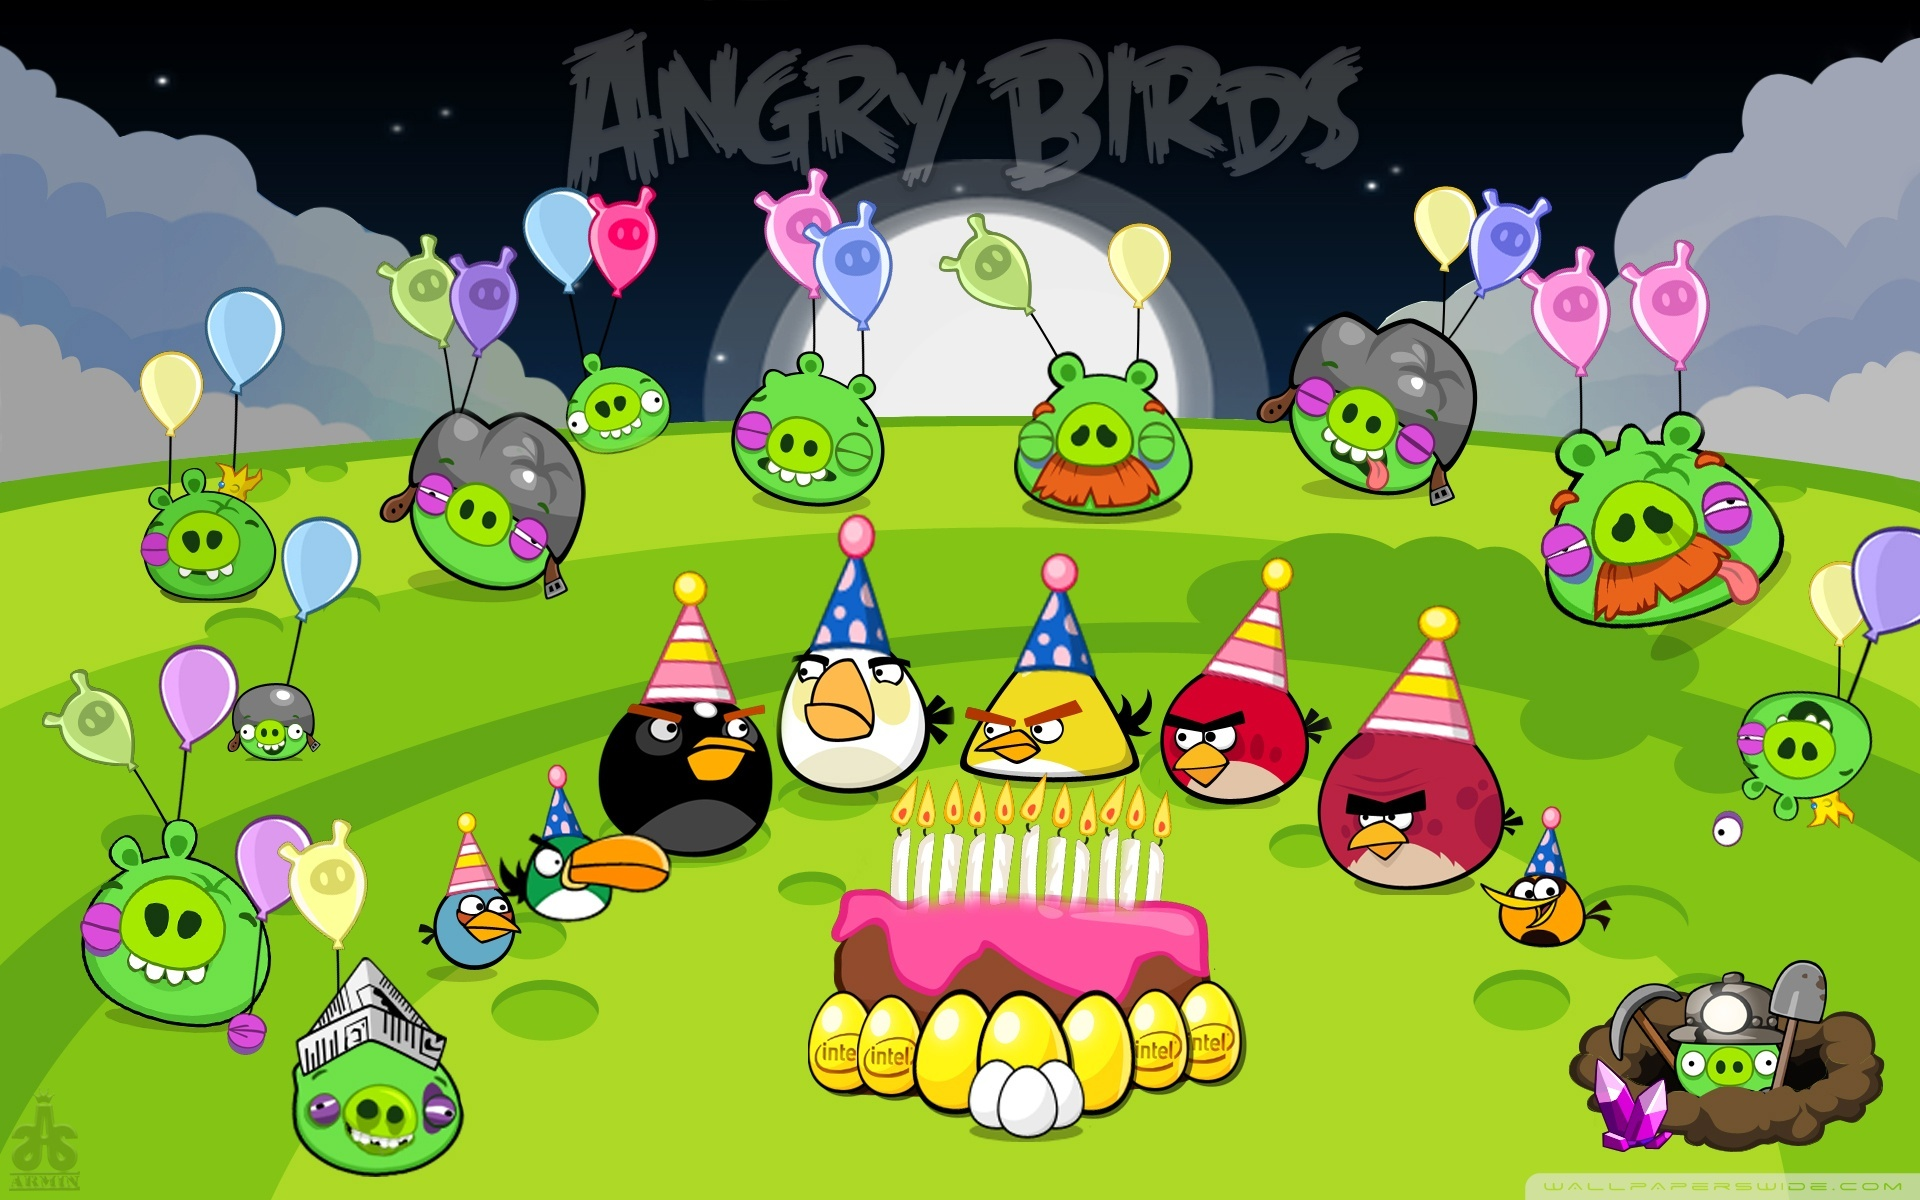 Image currently unavailable. Go to www.generator.acthack.com and choose Angry Birds 2 image, you will be redirect to Angry Birds 2 Generator site.